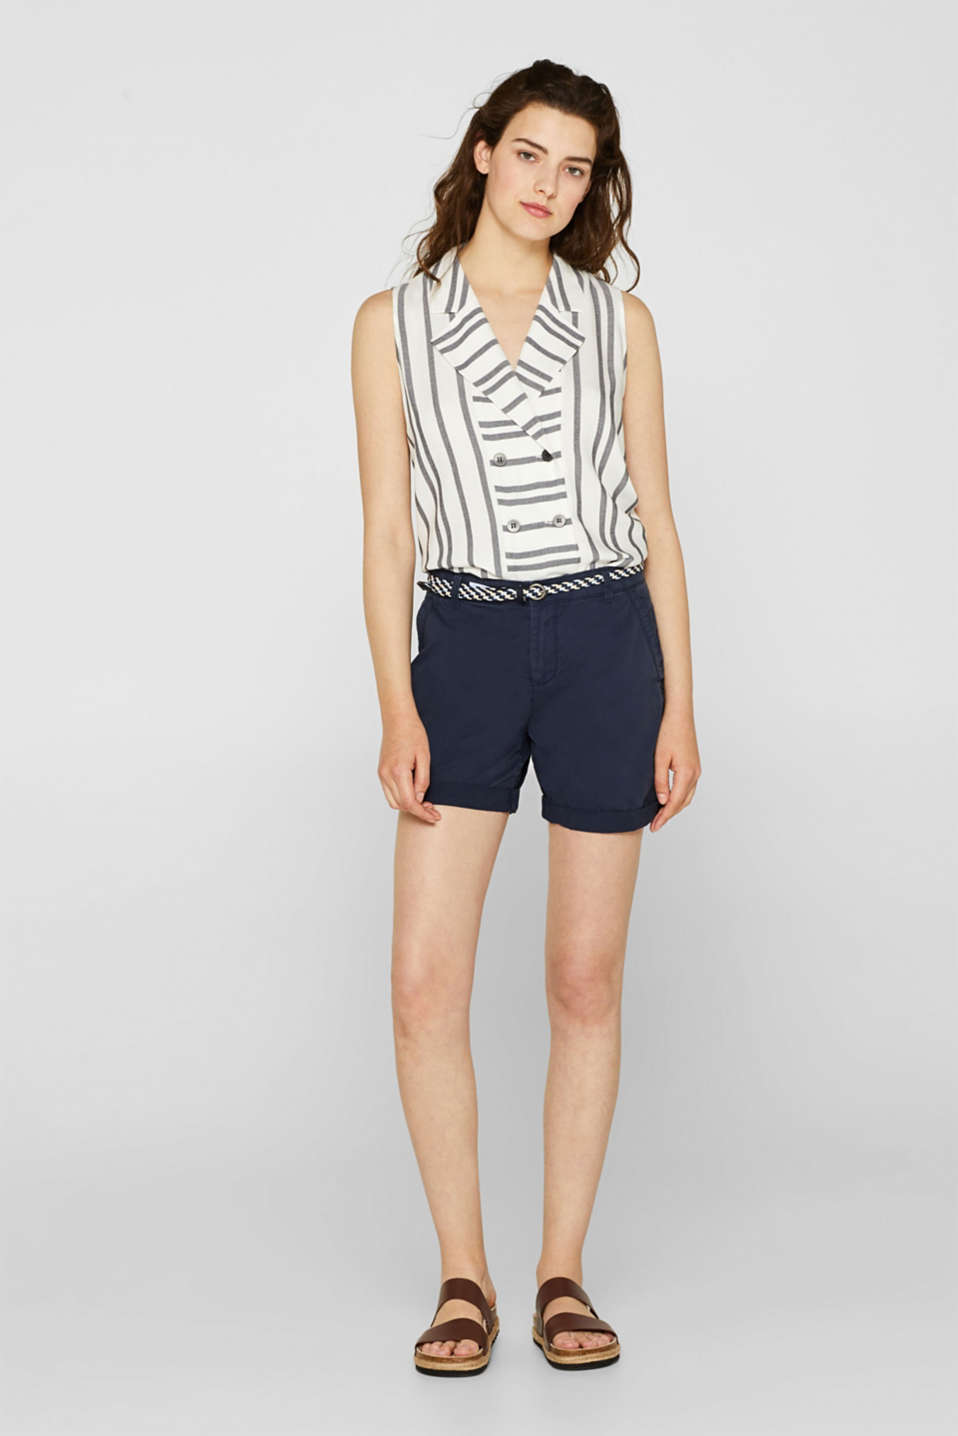 Shorts in a garment-washed look, 100% cotton, NAVY, detail image number 1